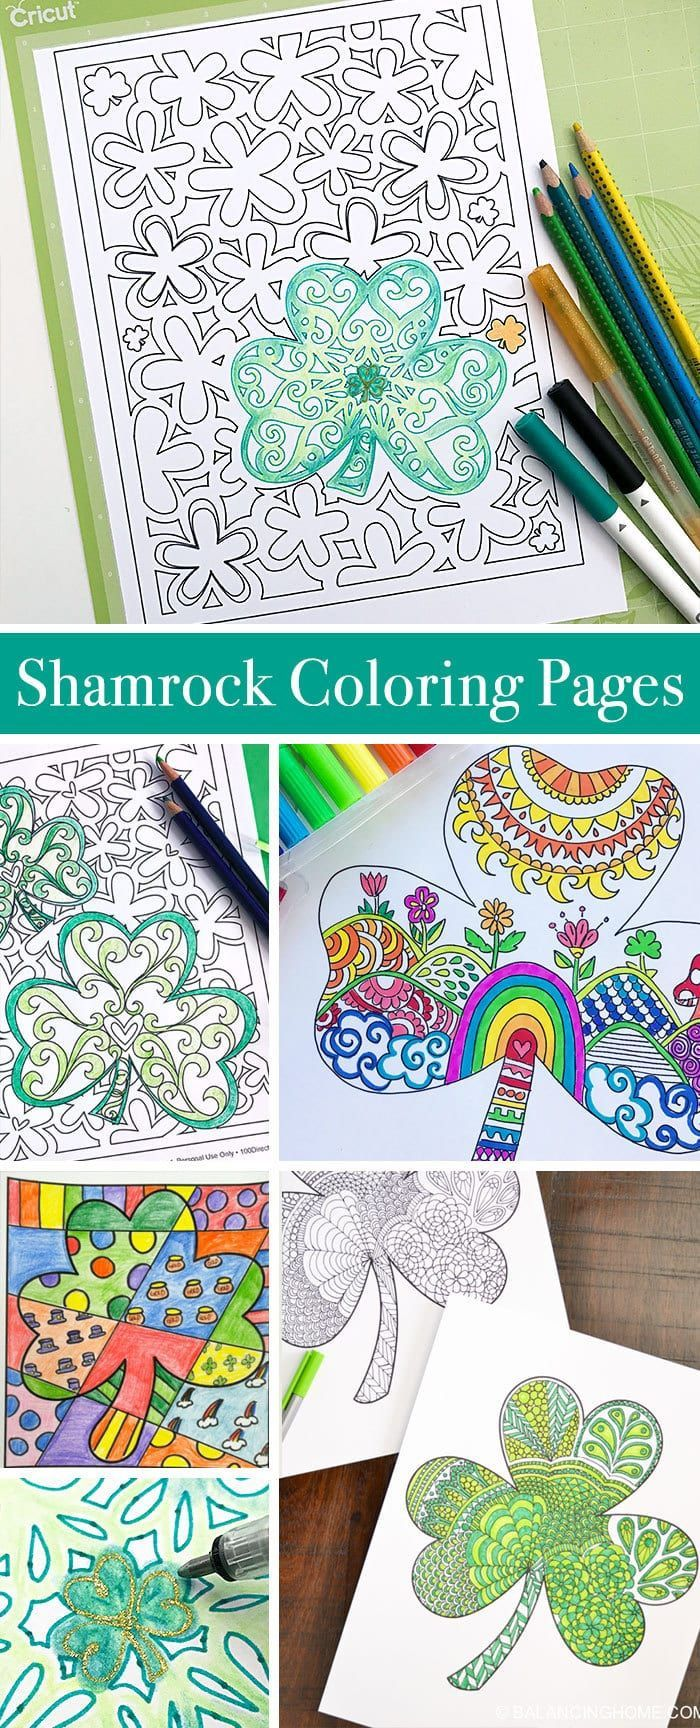 Shamrock Coloring Pages to Print and Color